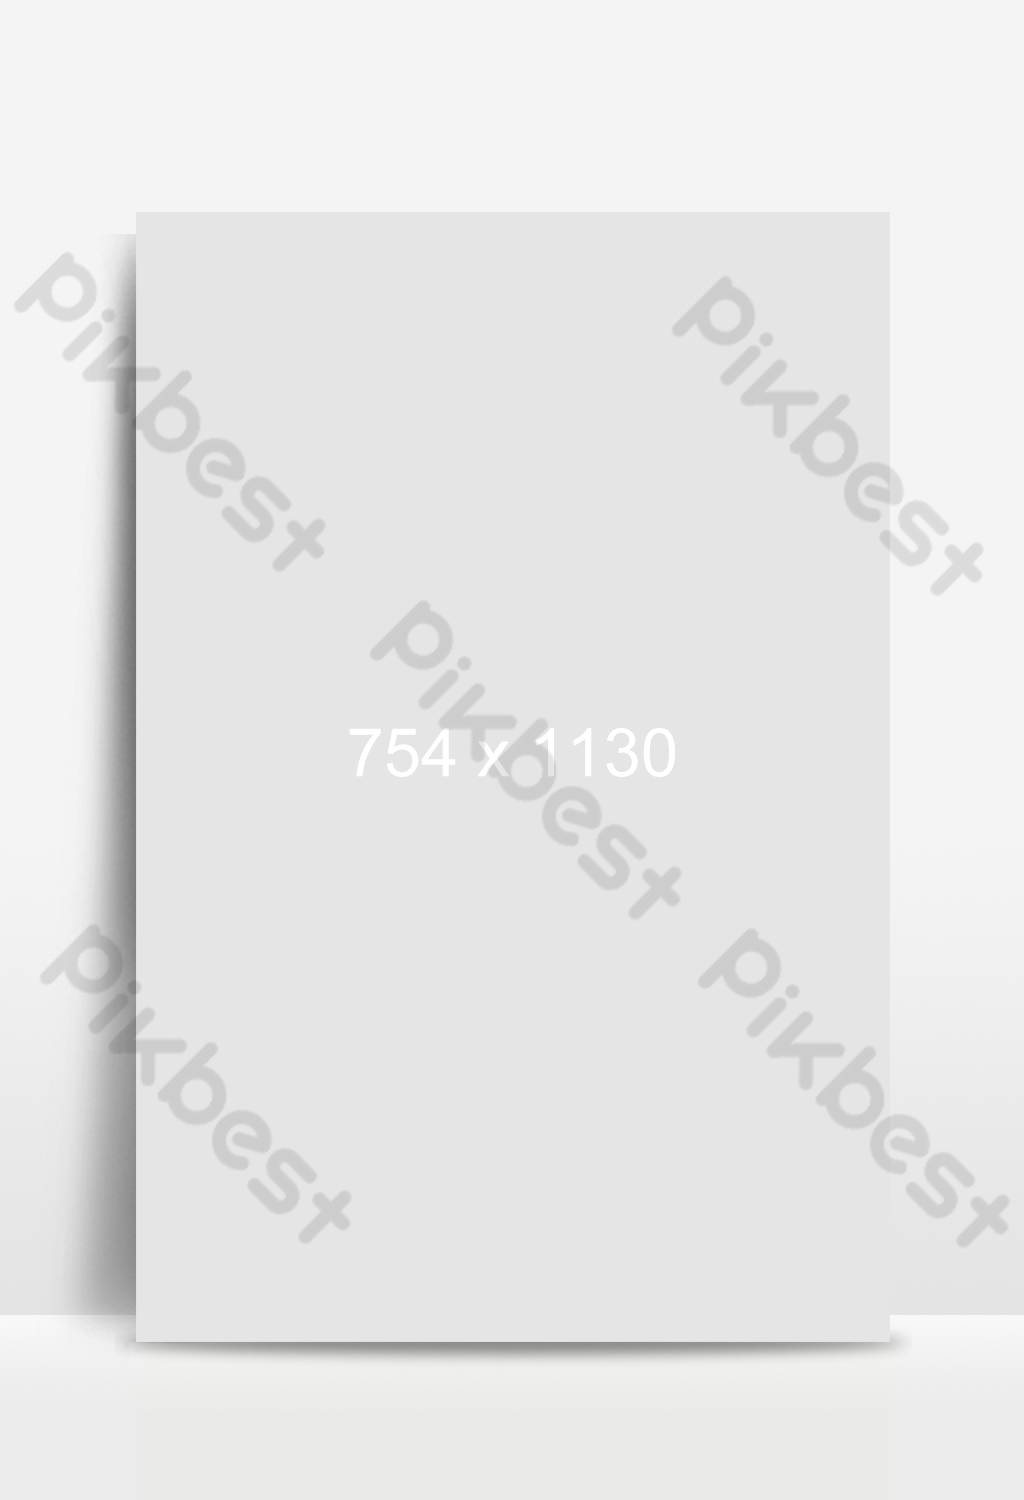 Simple Creative Electric Guitar Colorful Background Backgrounds Psd Free Download Pikbest